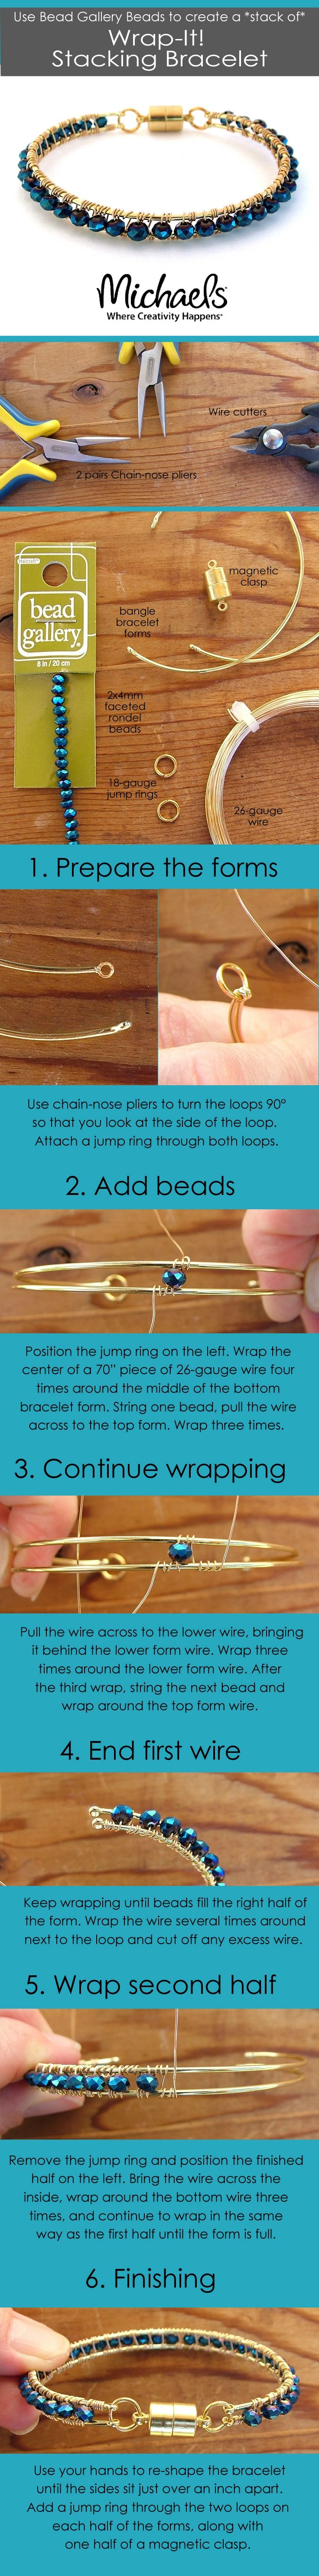 Use Bead Gallery Beads to create a stack of Wrap-it Stacking Bracelet…